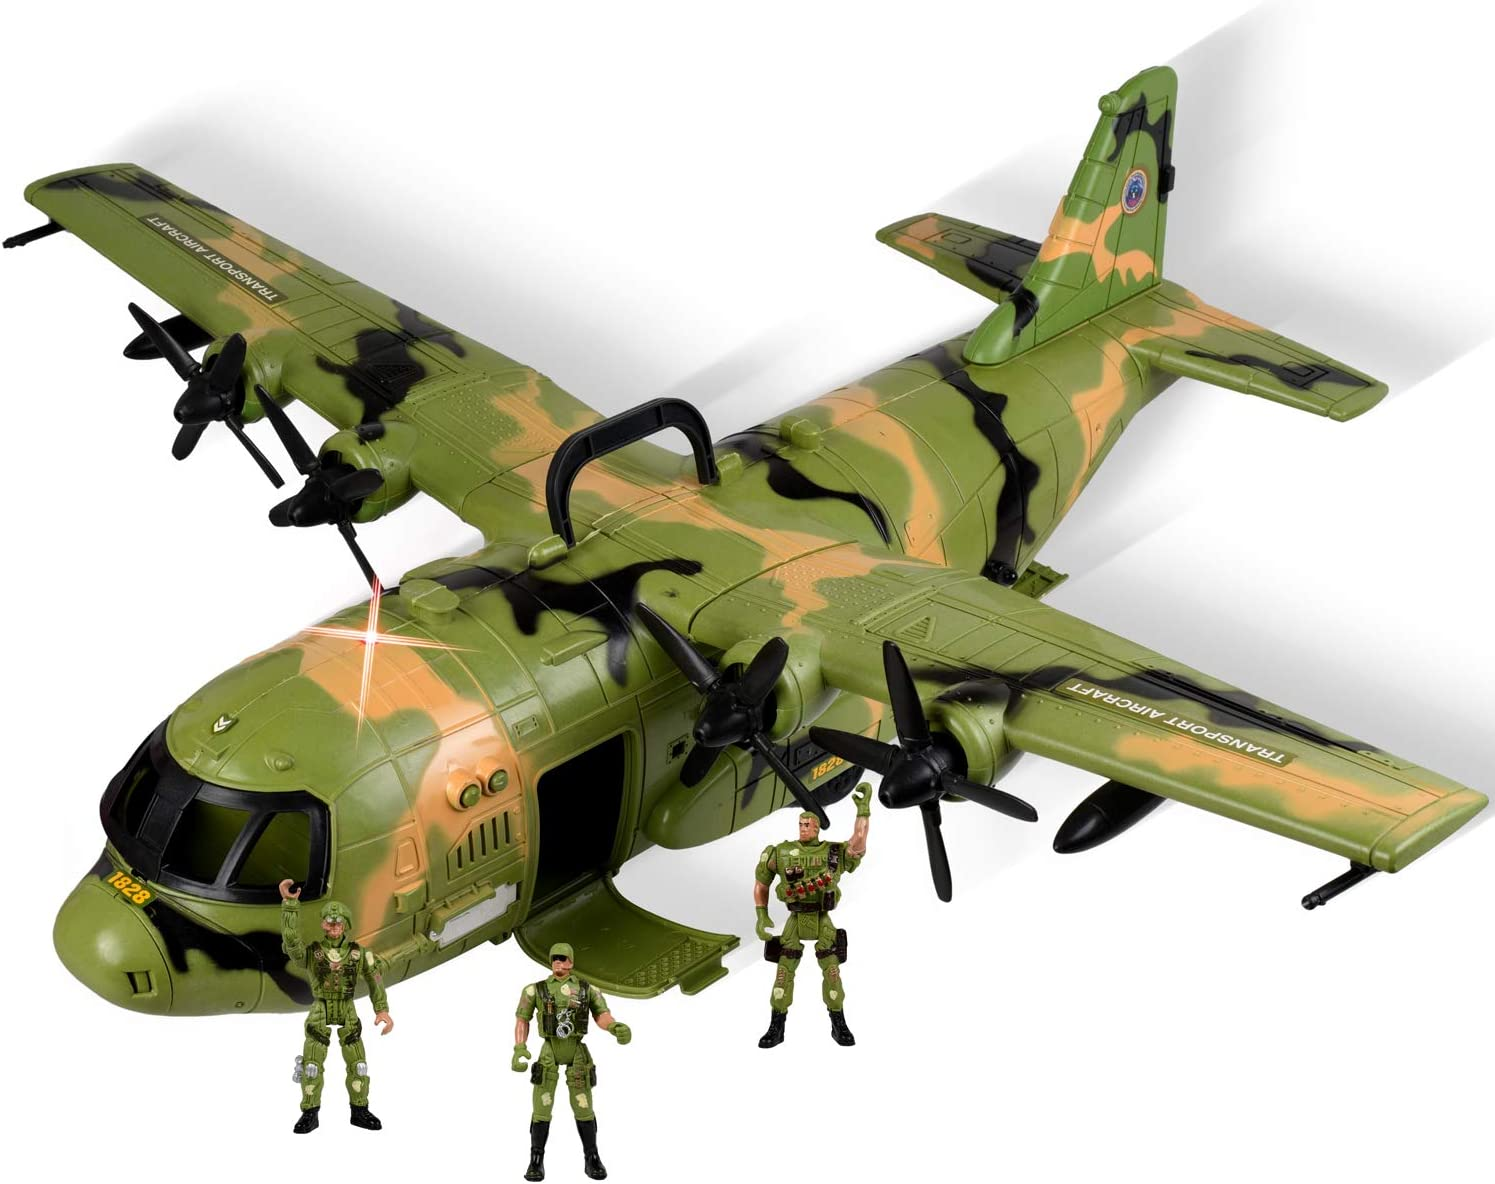 Military Combat Air Force Airplane C 130 With Lights And Sound